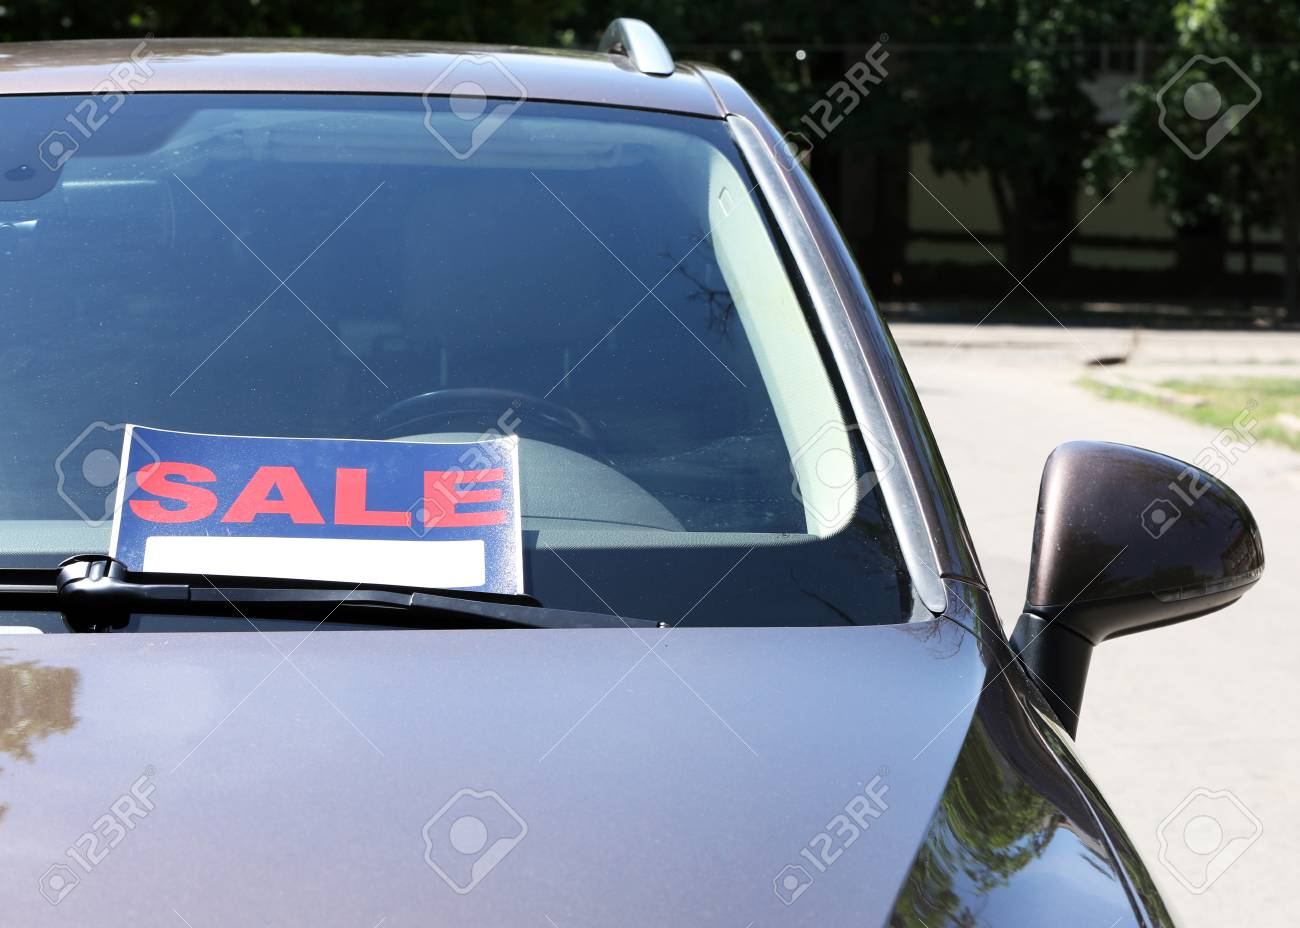 For Sale Sign On Windshield Of Car Stock Photo Picture And Royalty